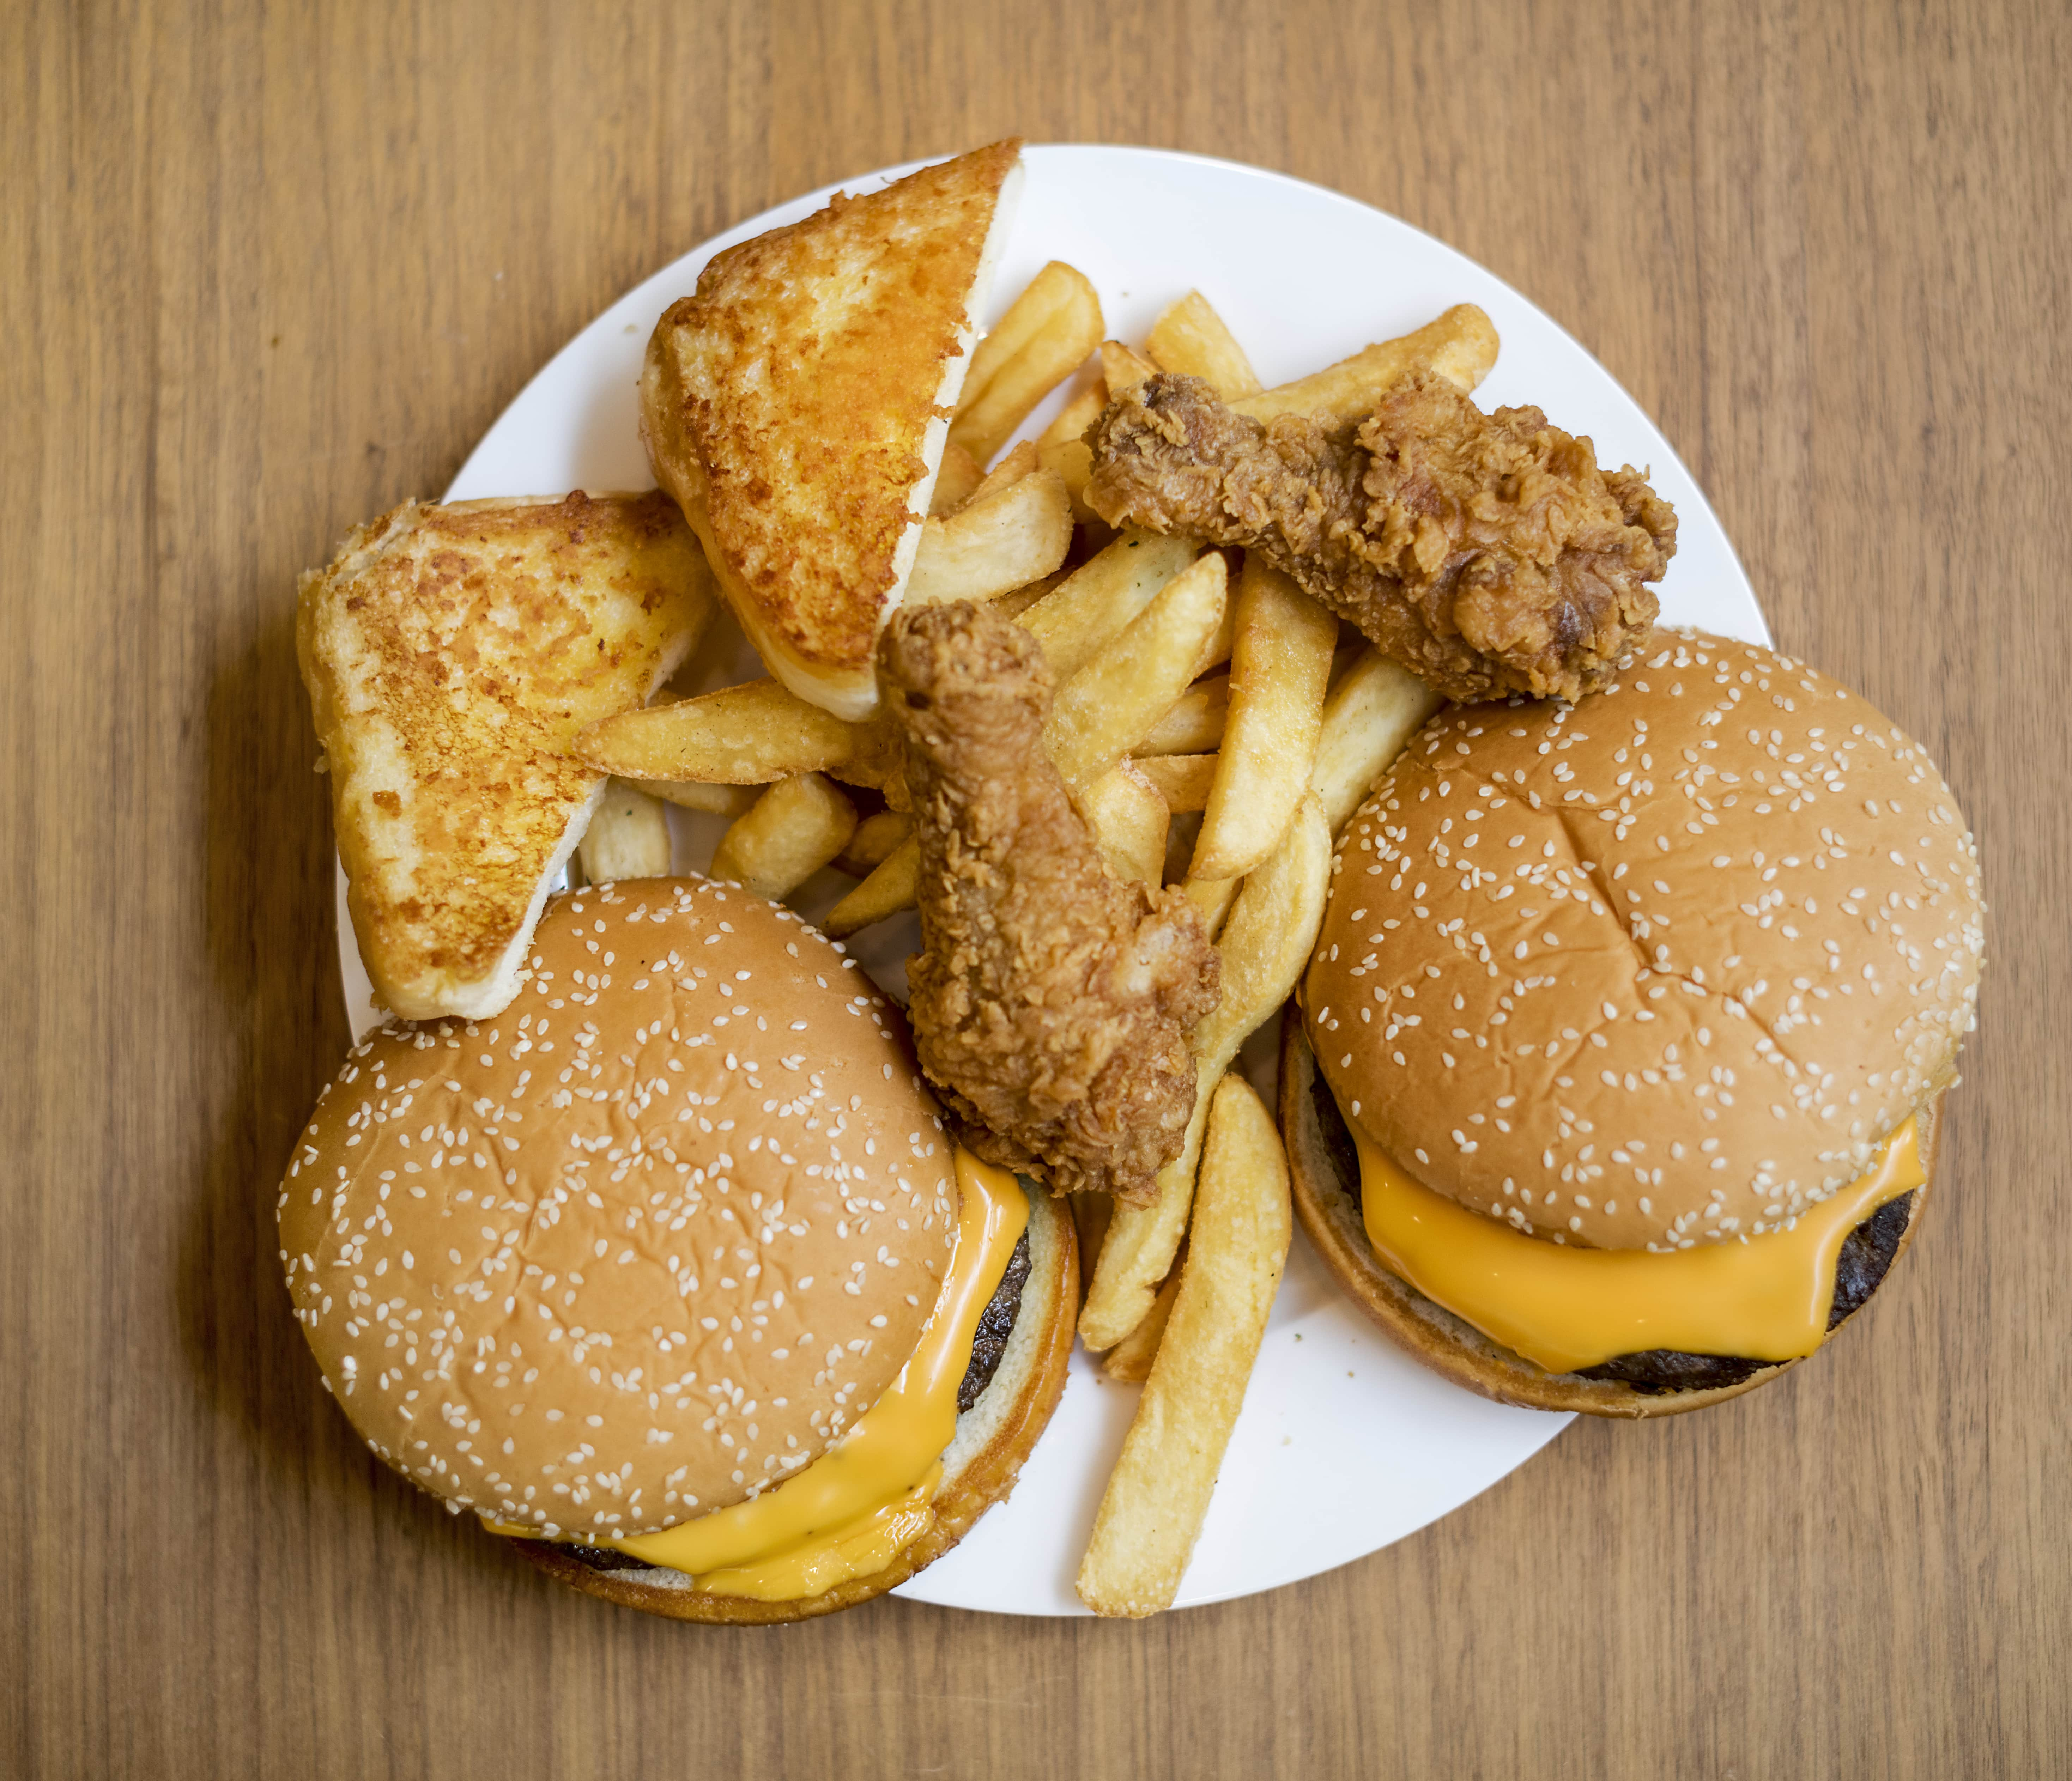 A plate full of fast food that would not help a trucker establish a healthy lifestyle